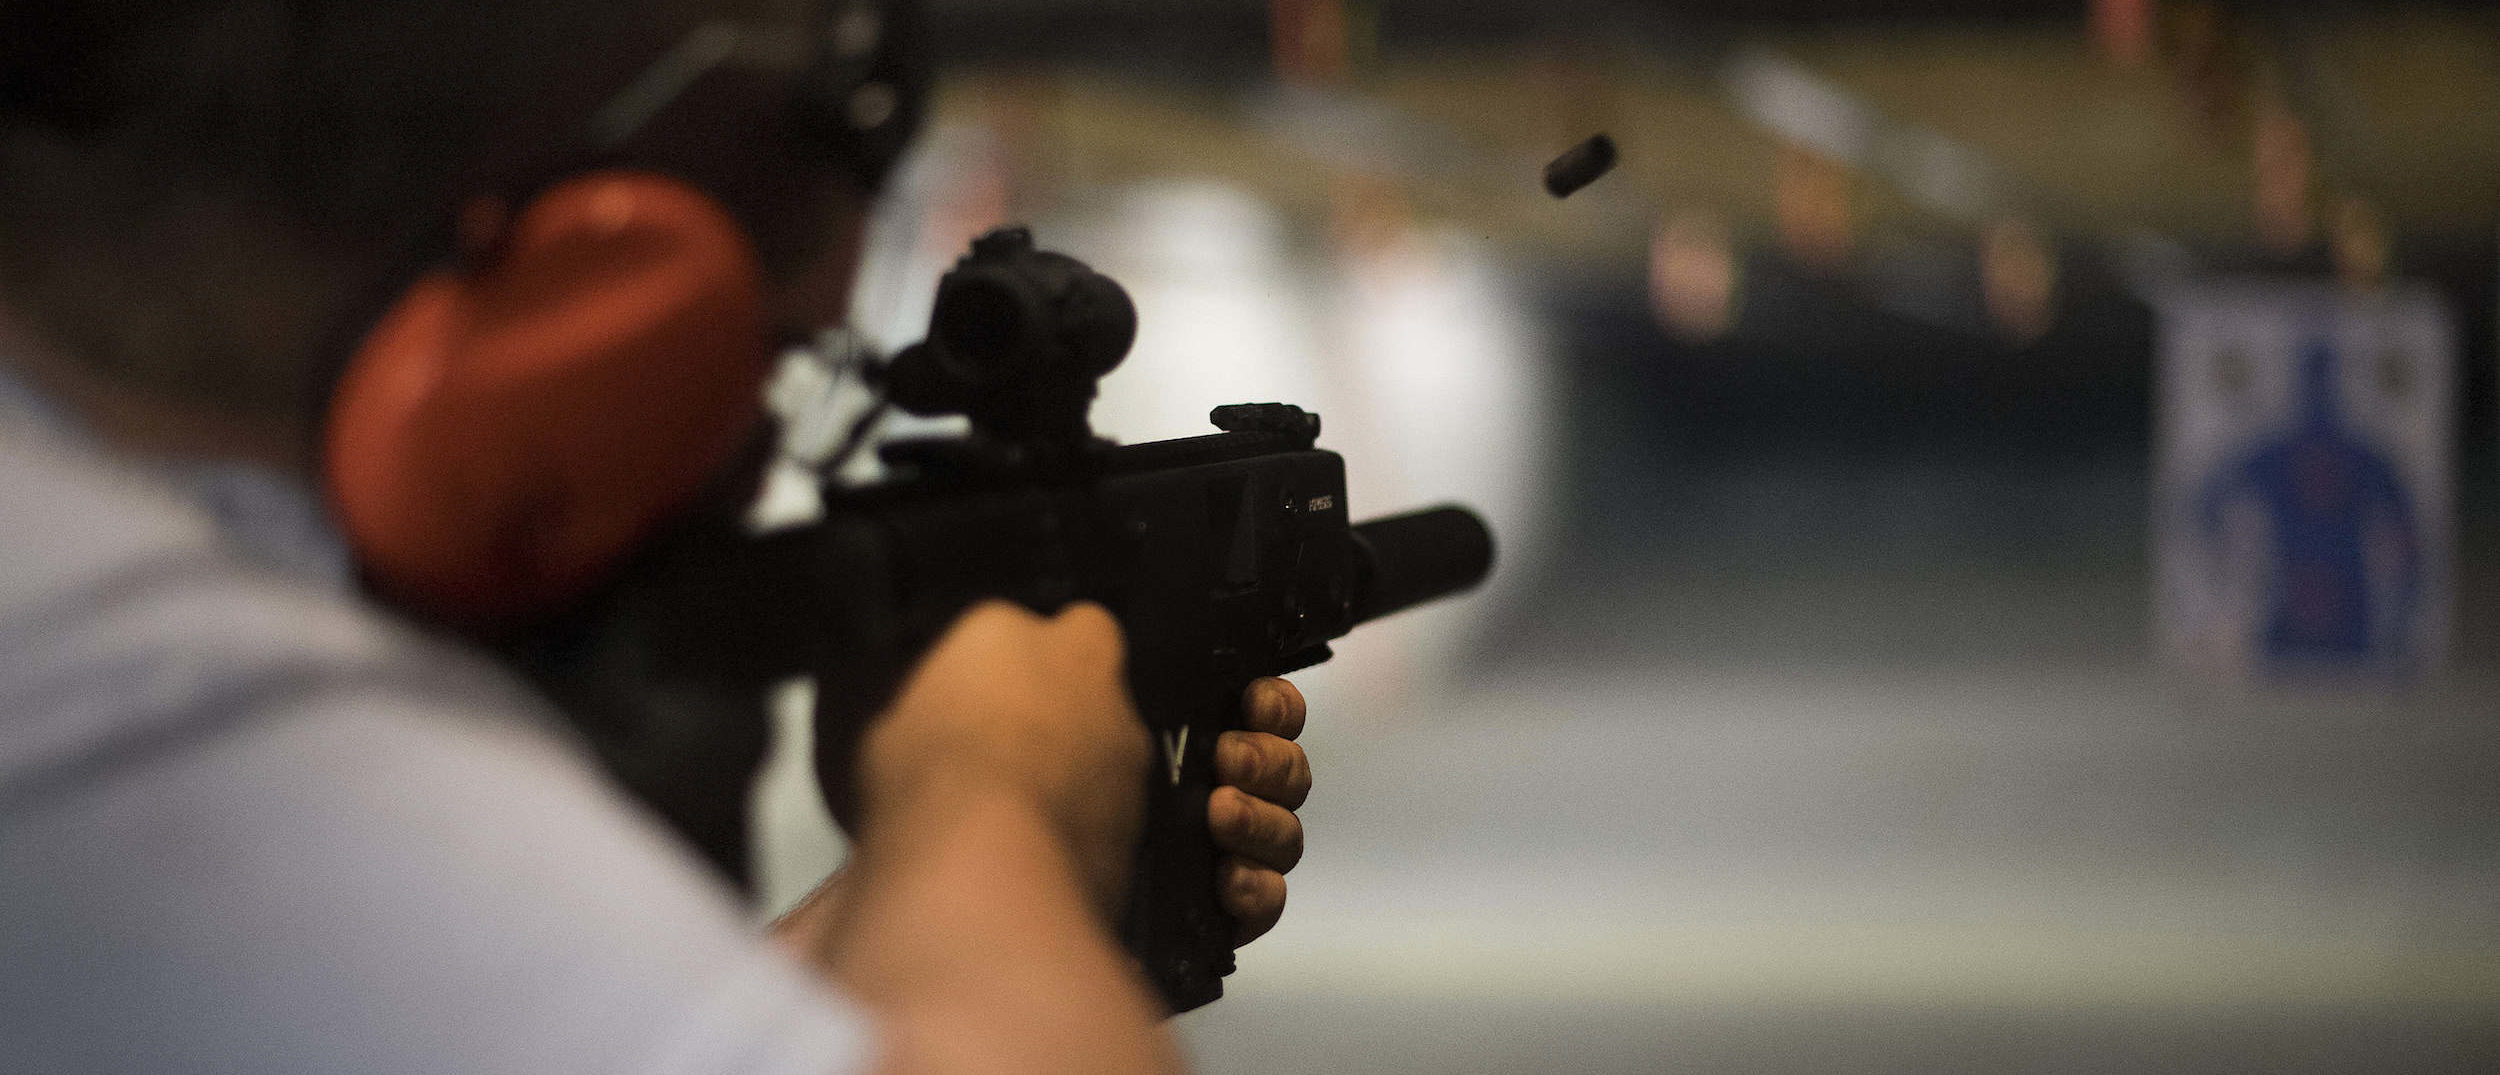 Ryan Salmon fires an assault rifle at the Lynchburg Arms & Indoor Shooting Range in Lynchburg, Virginia, on October 20, 2017. (Photo: JIM WATSON/AFP/Getty Images)